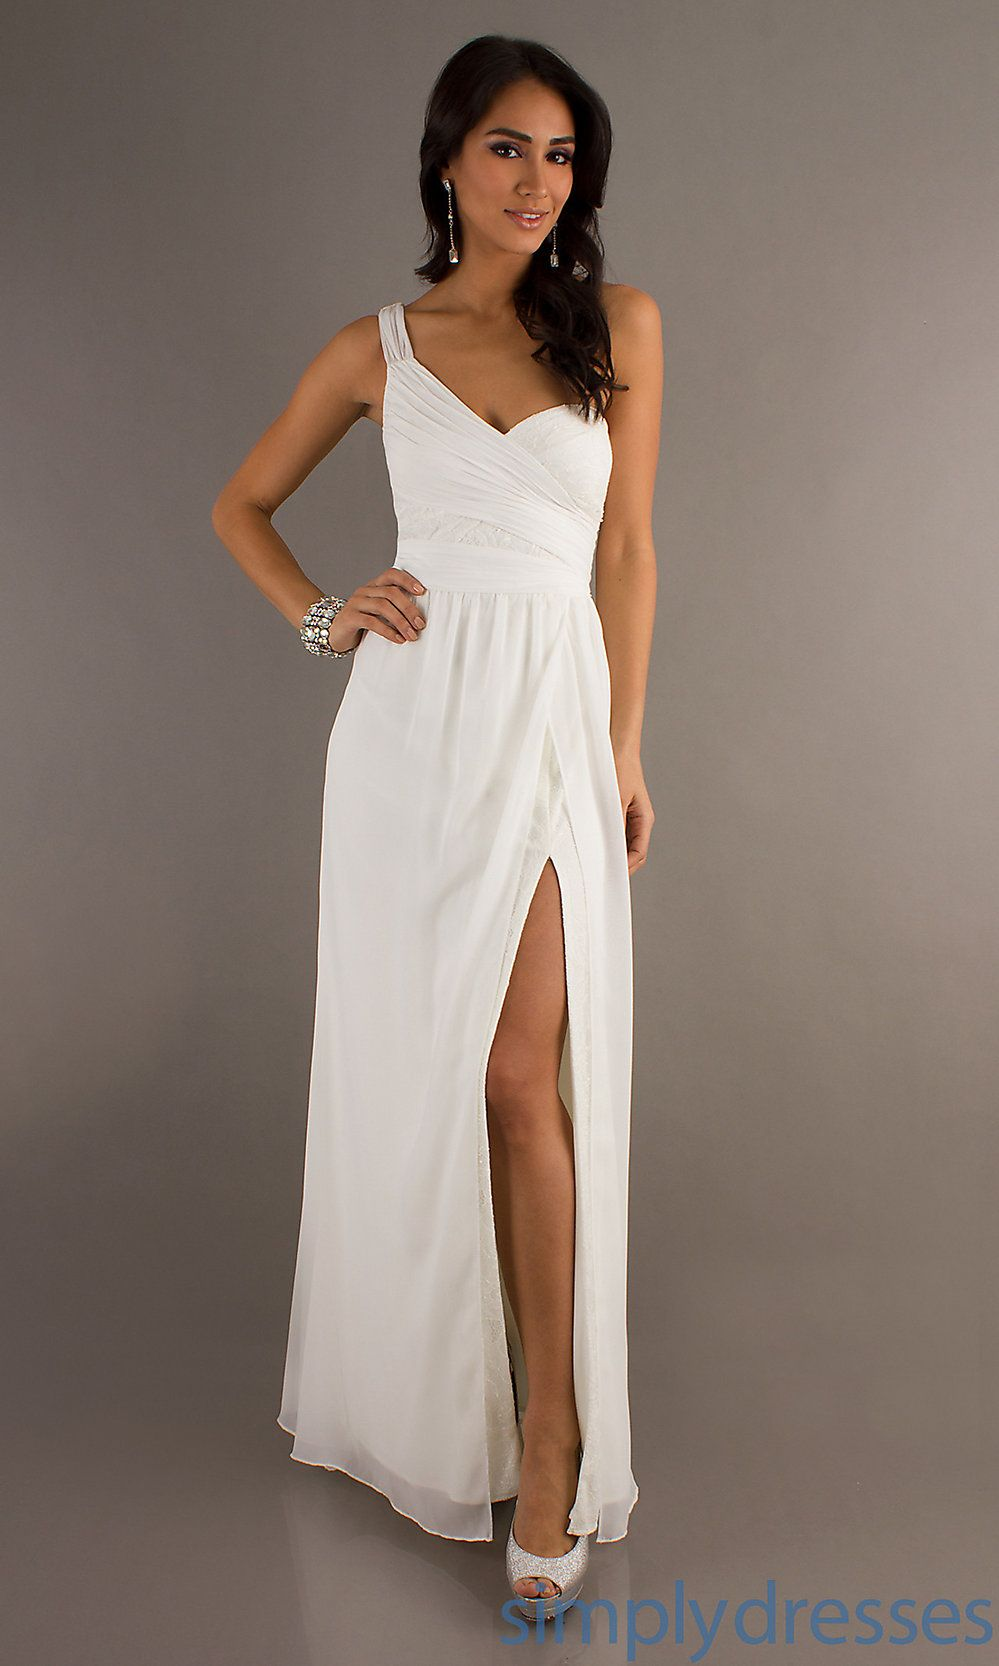 One Shoulder Gown, Long Formal White Dress - Simply Dresses   לבוש ...